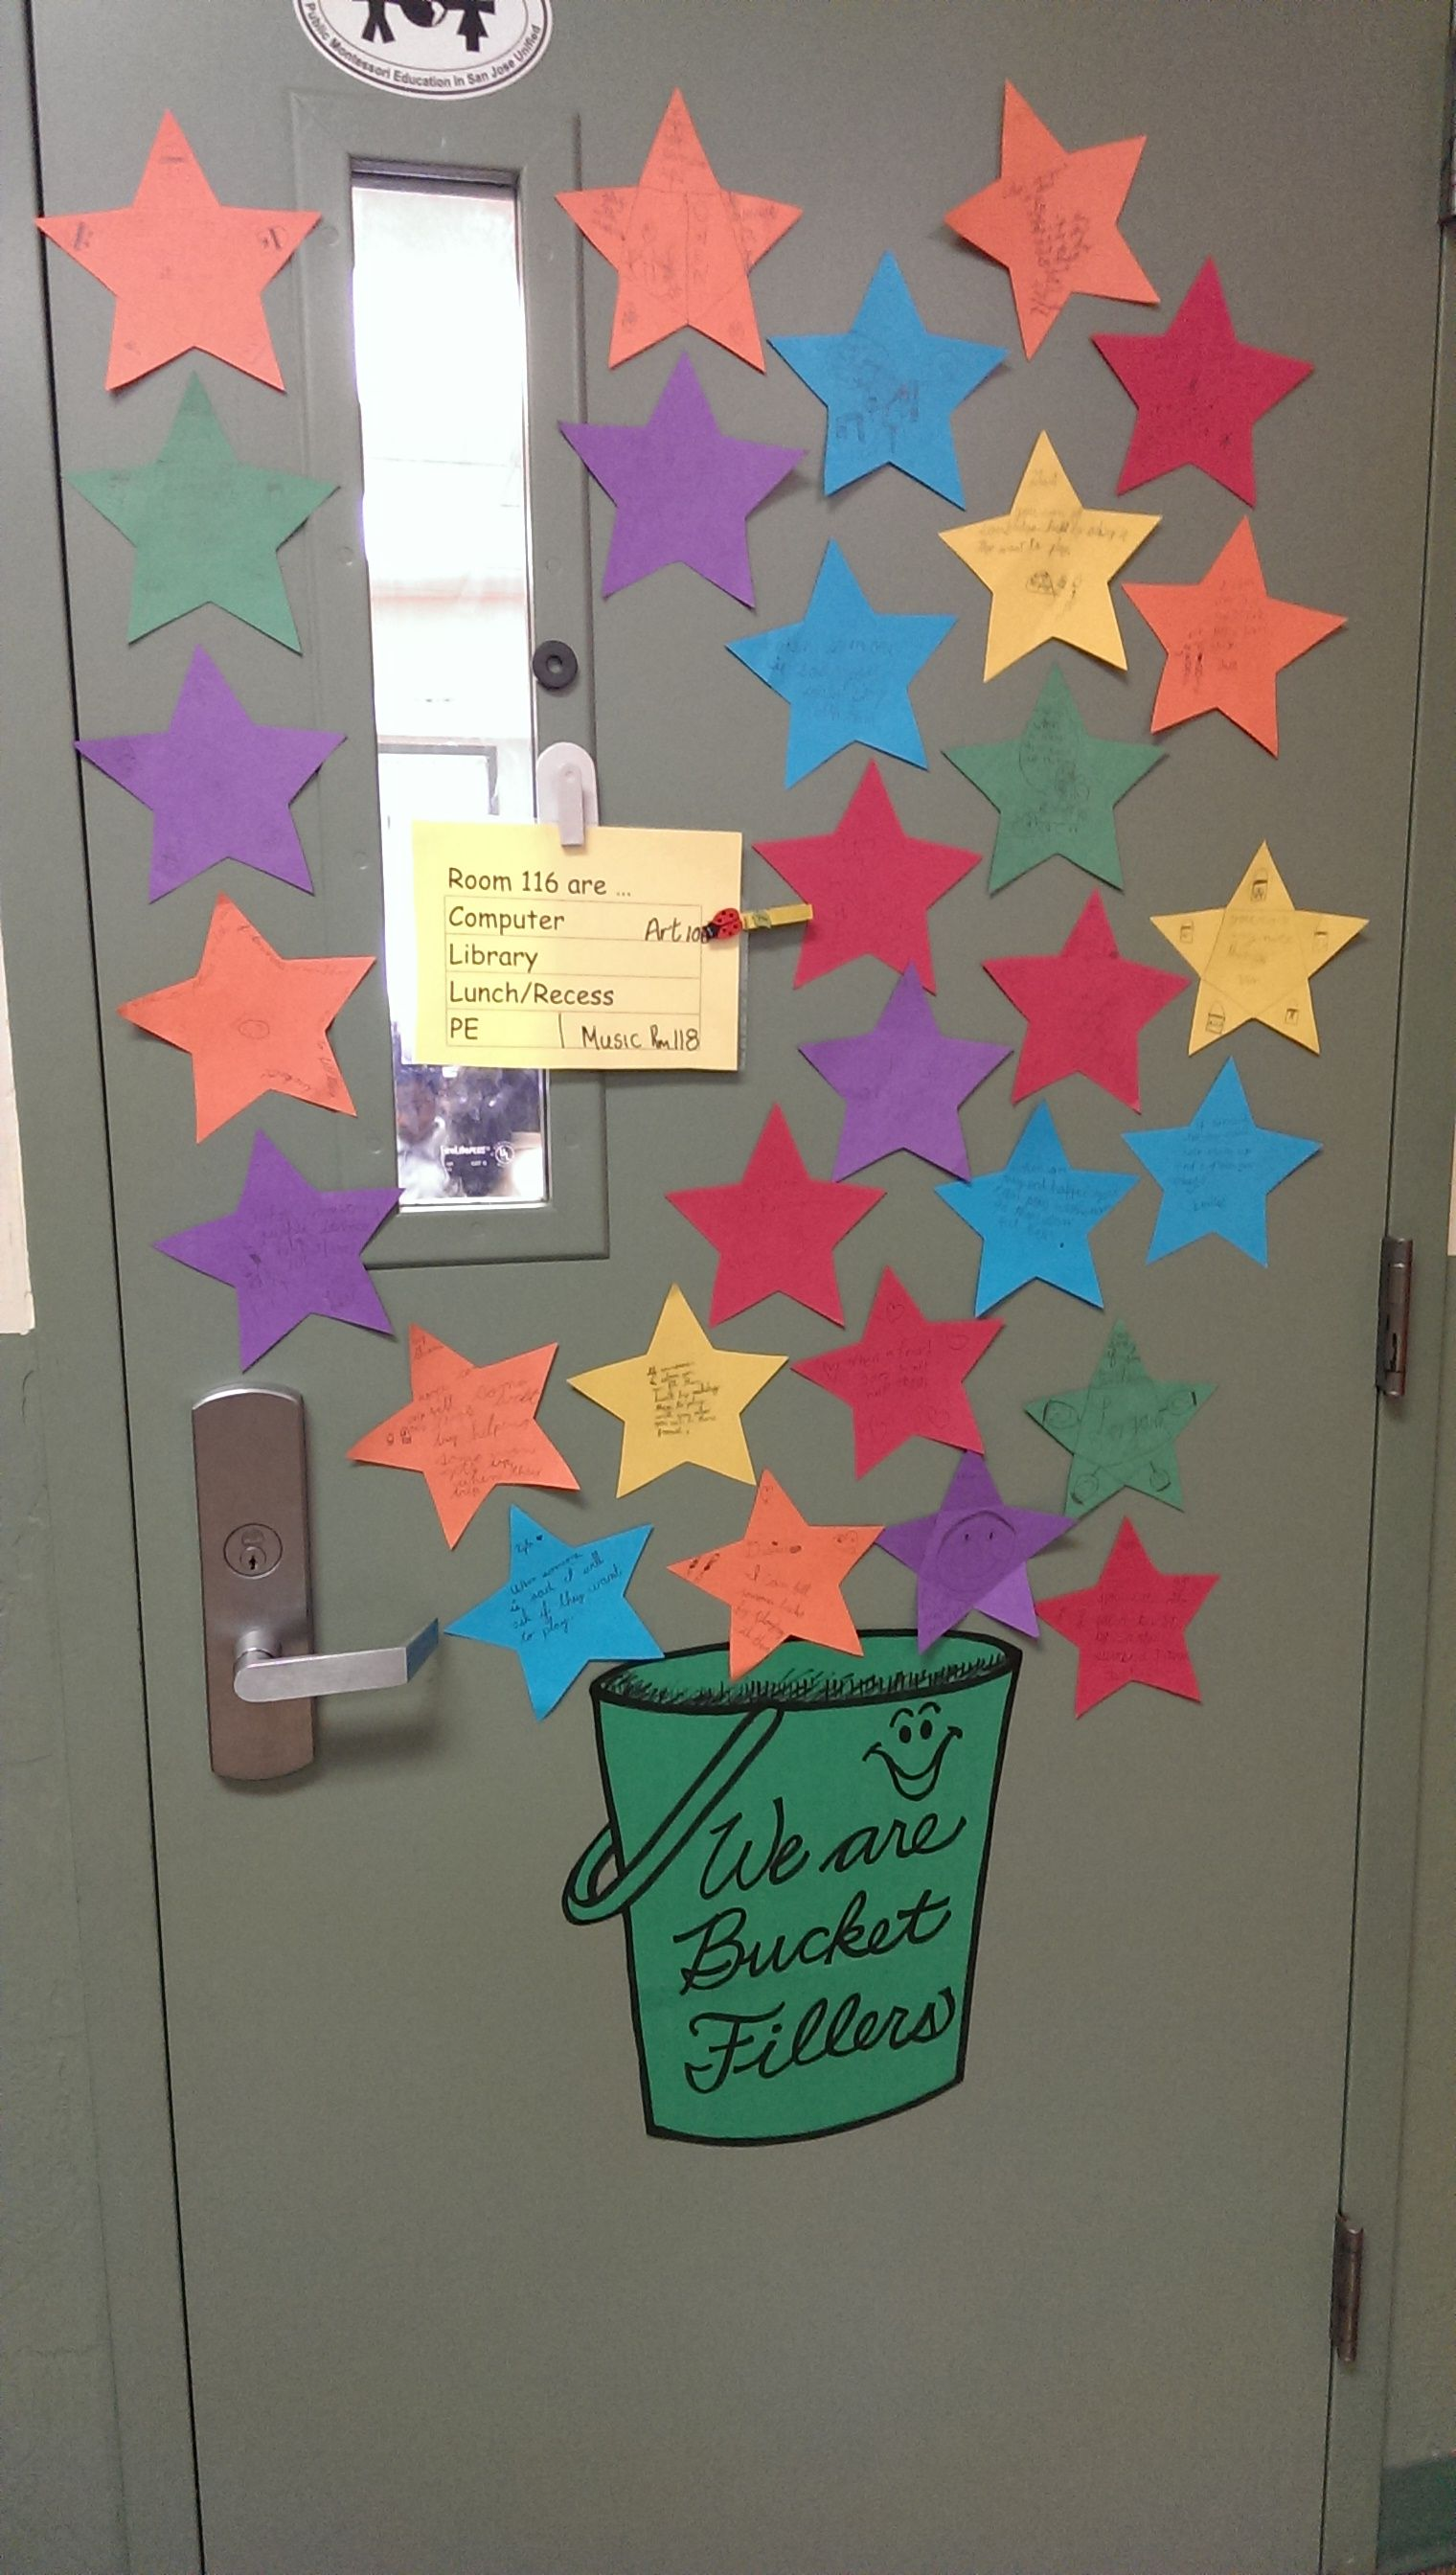 Easy Class Activity Have Students Write Down Their Best Bucket Filling Ideas On Blank Stars